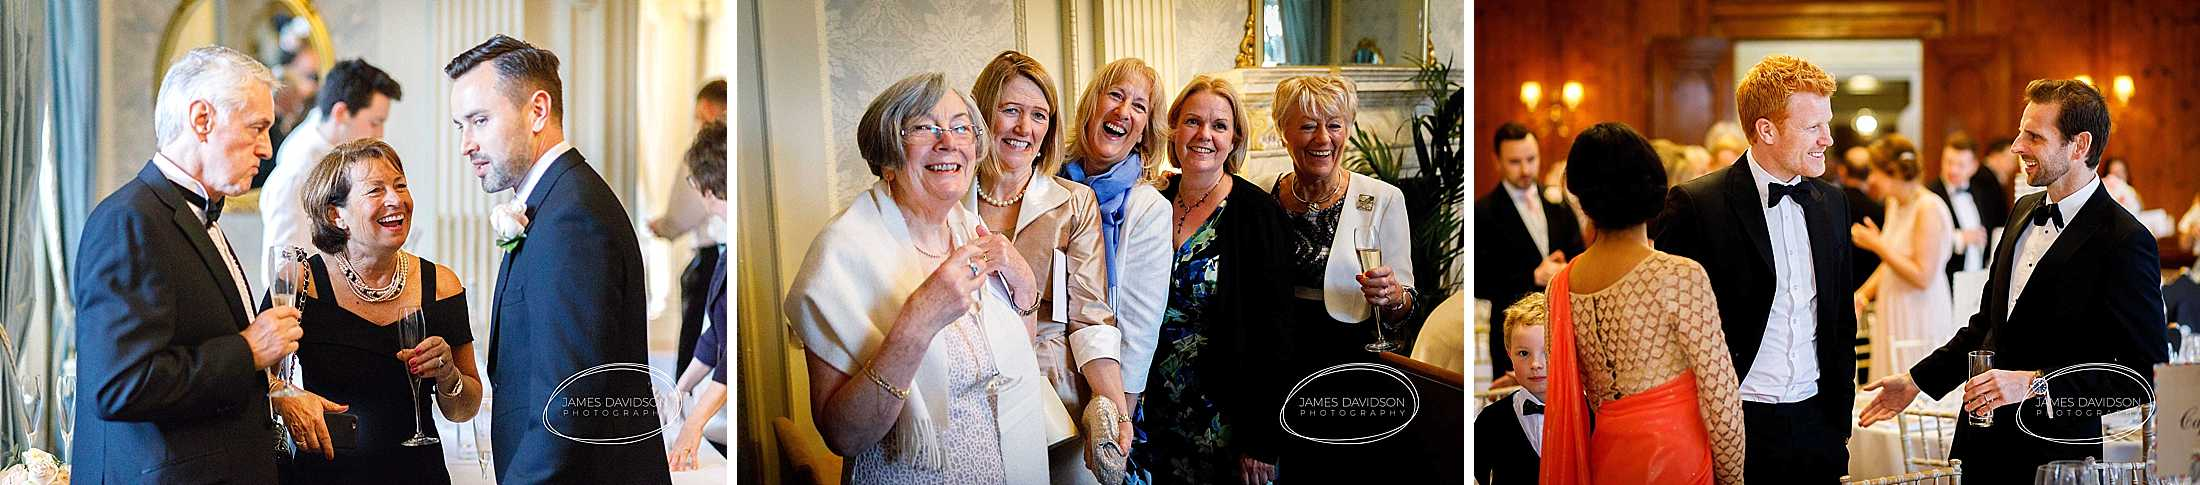 hedsor-house-wedding-photographer-076